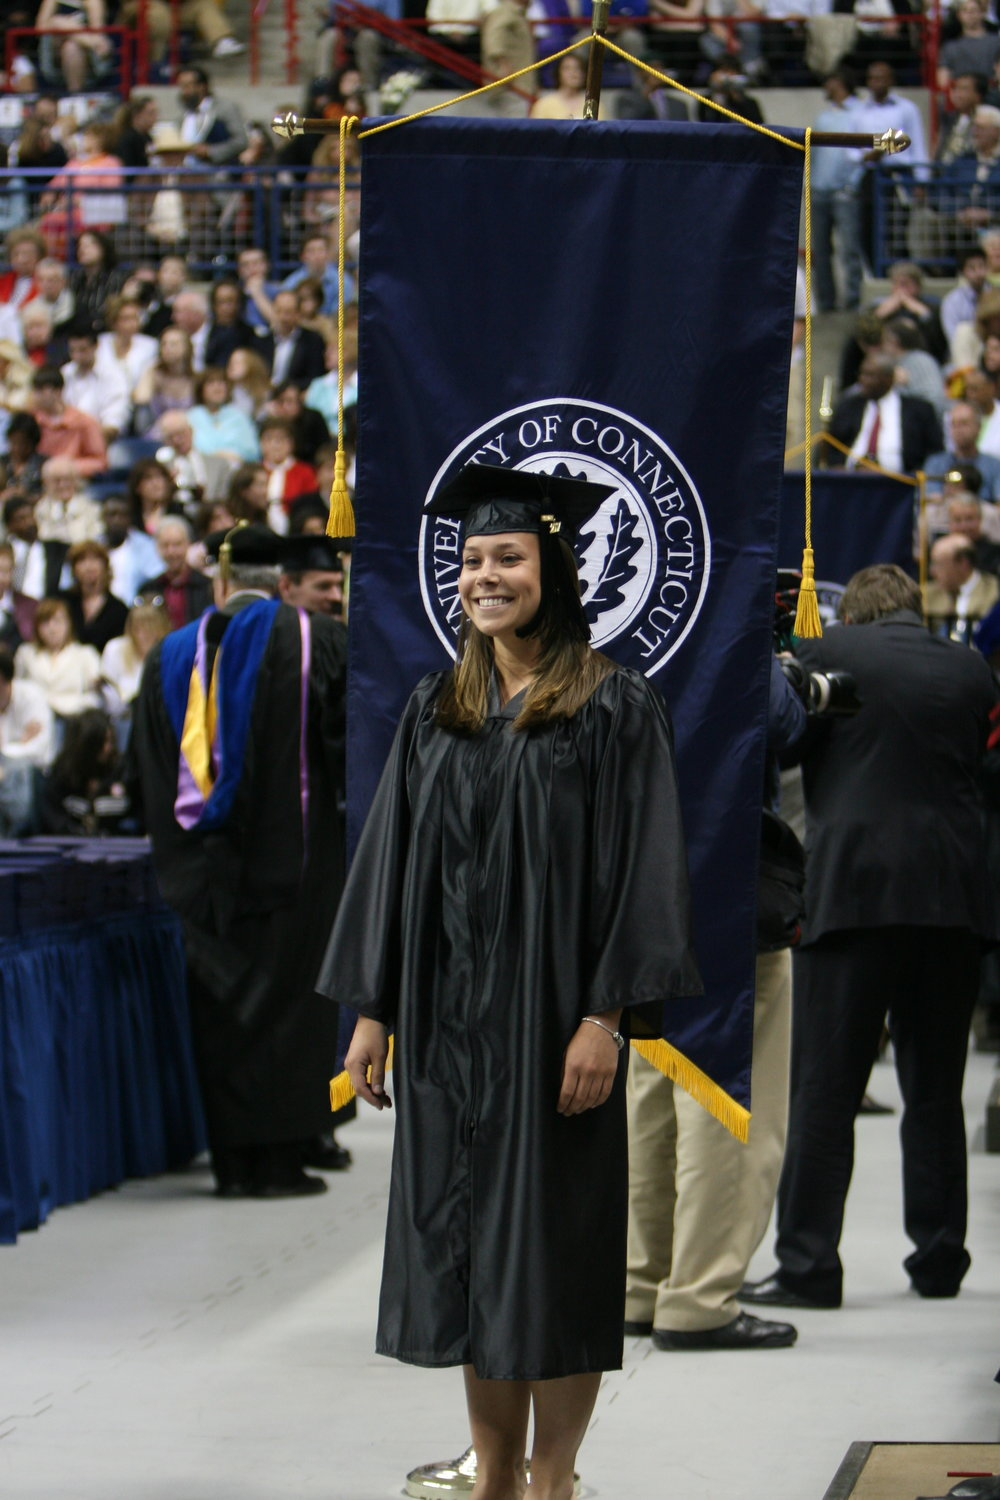 A University of Connecticut graduate walks at a 2007 graduation ceremony in Gampel Pavilion (File Photo/The Daily Campus)